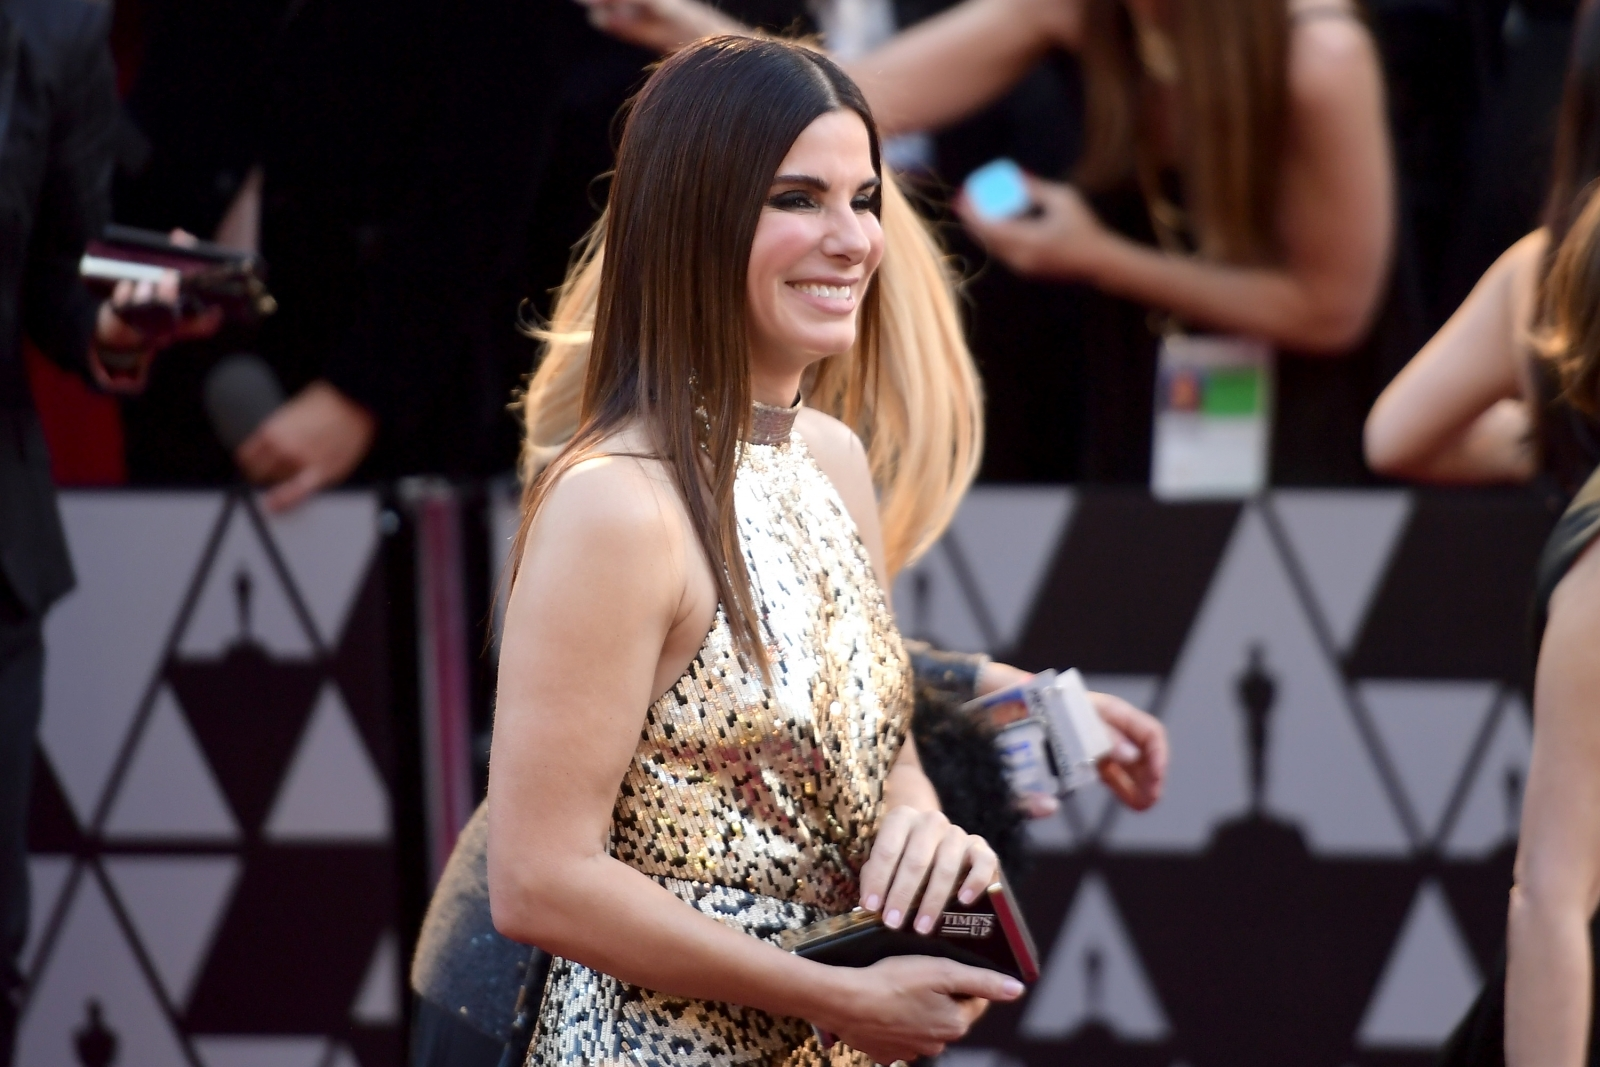 Is This Sandra Bullock 53 Or Kendall Jenner 22